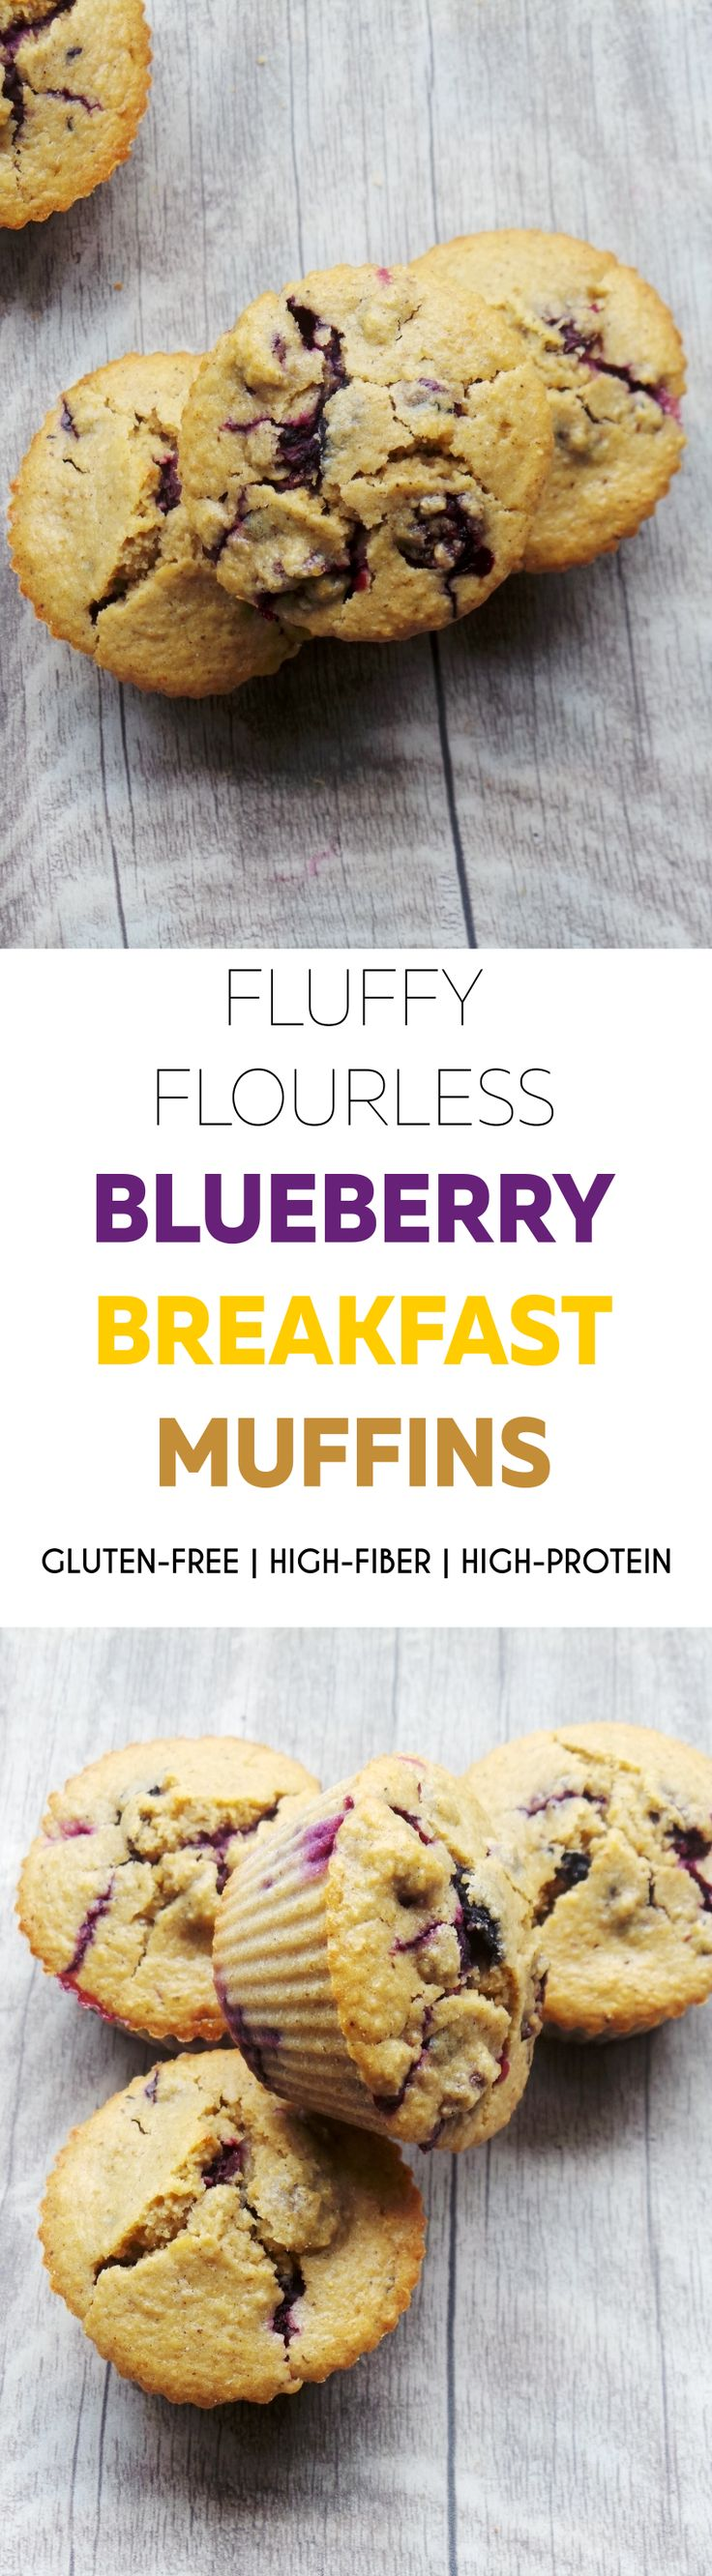 Flourless and refined sugar-free blueberry breakfast muffins, use gluten-free oats for gf version